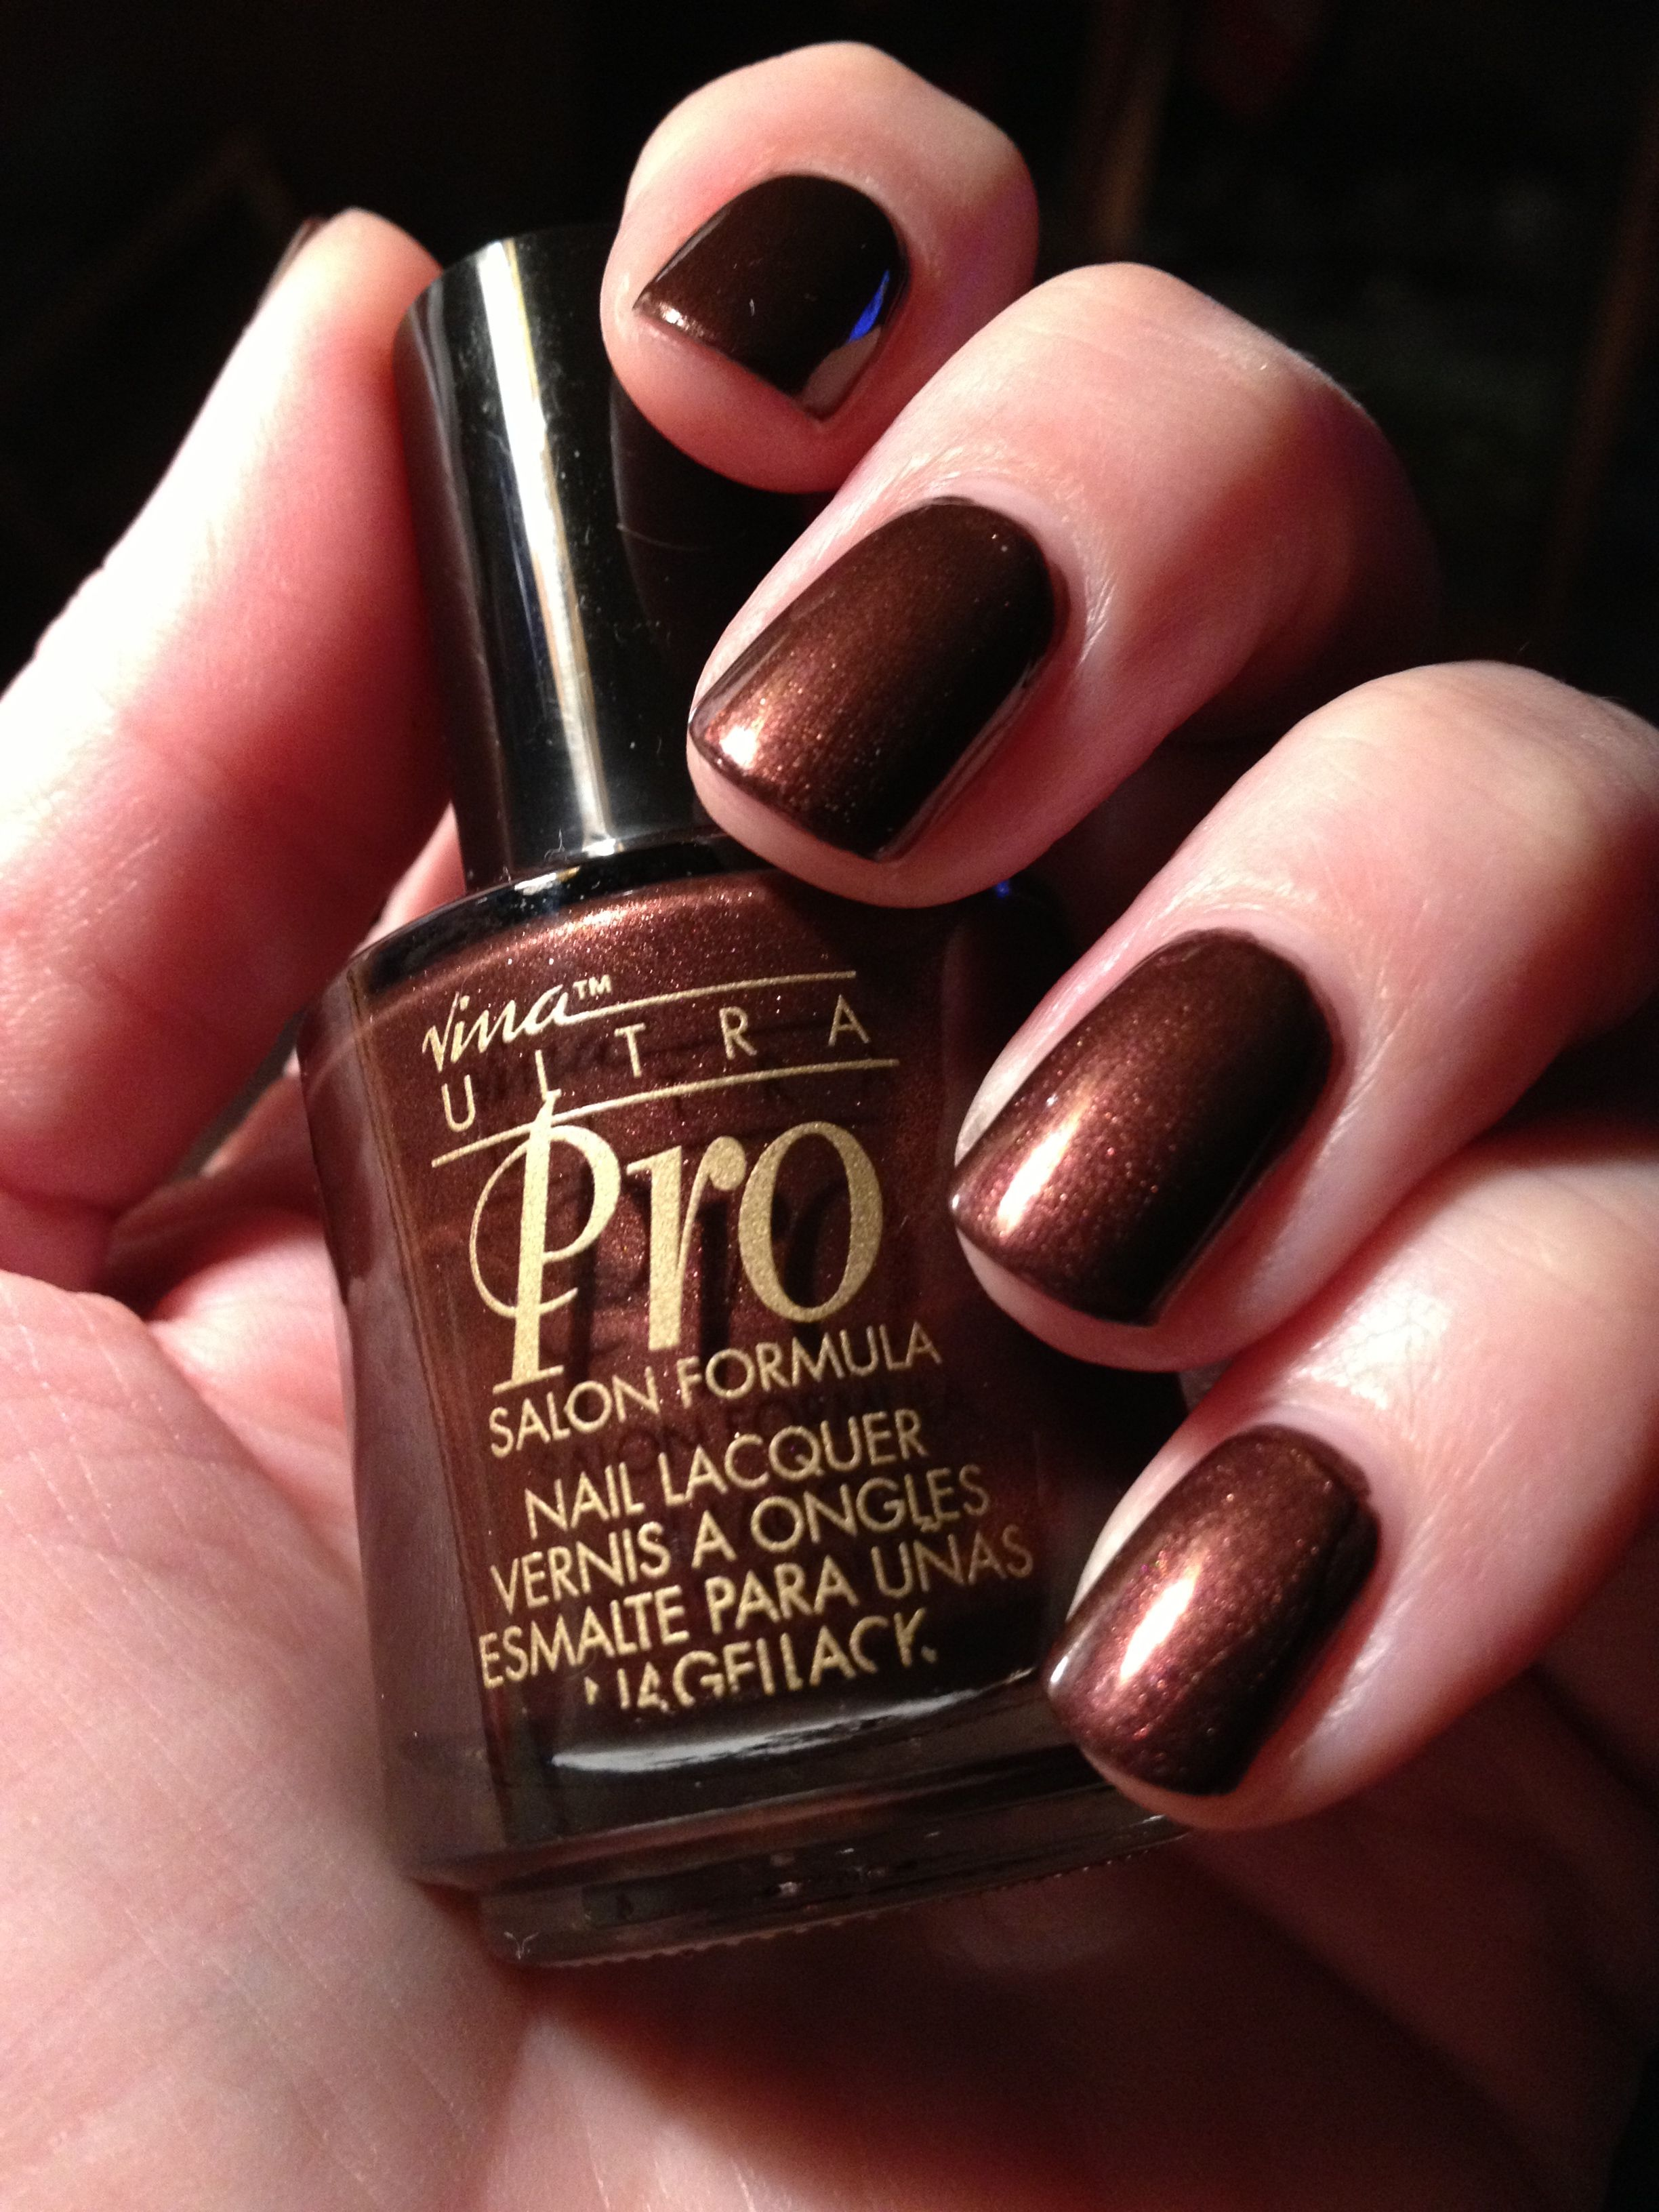 Nina Ultra Pro nail polish - Maple Syrup My favorite polish EVER ...